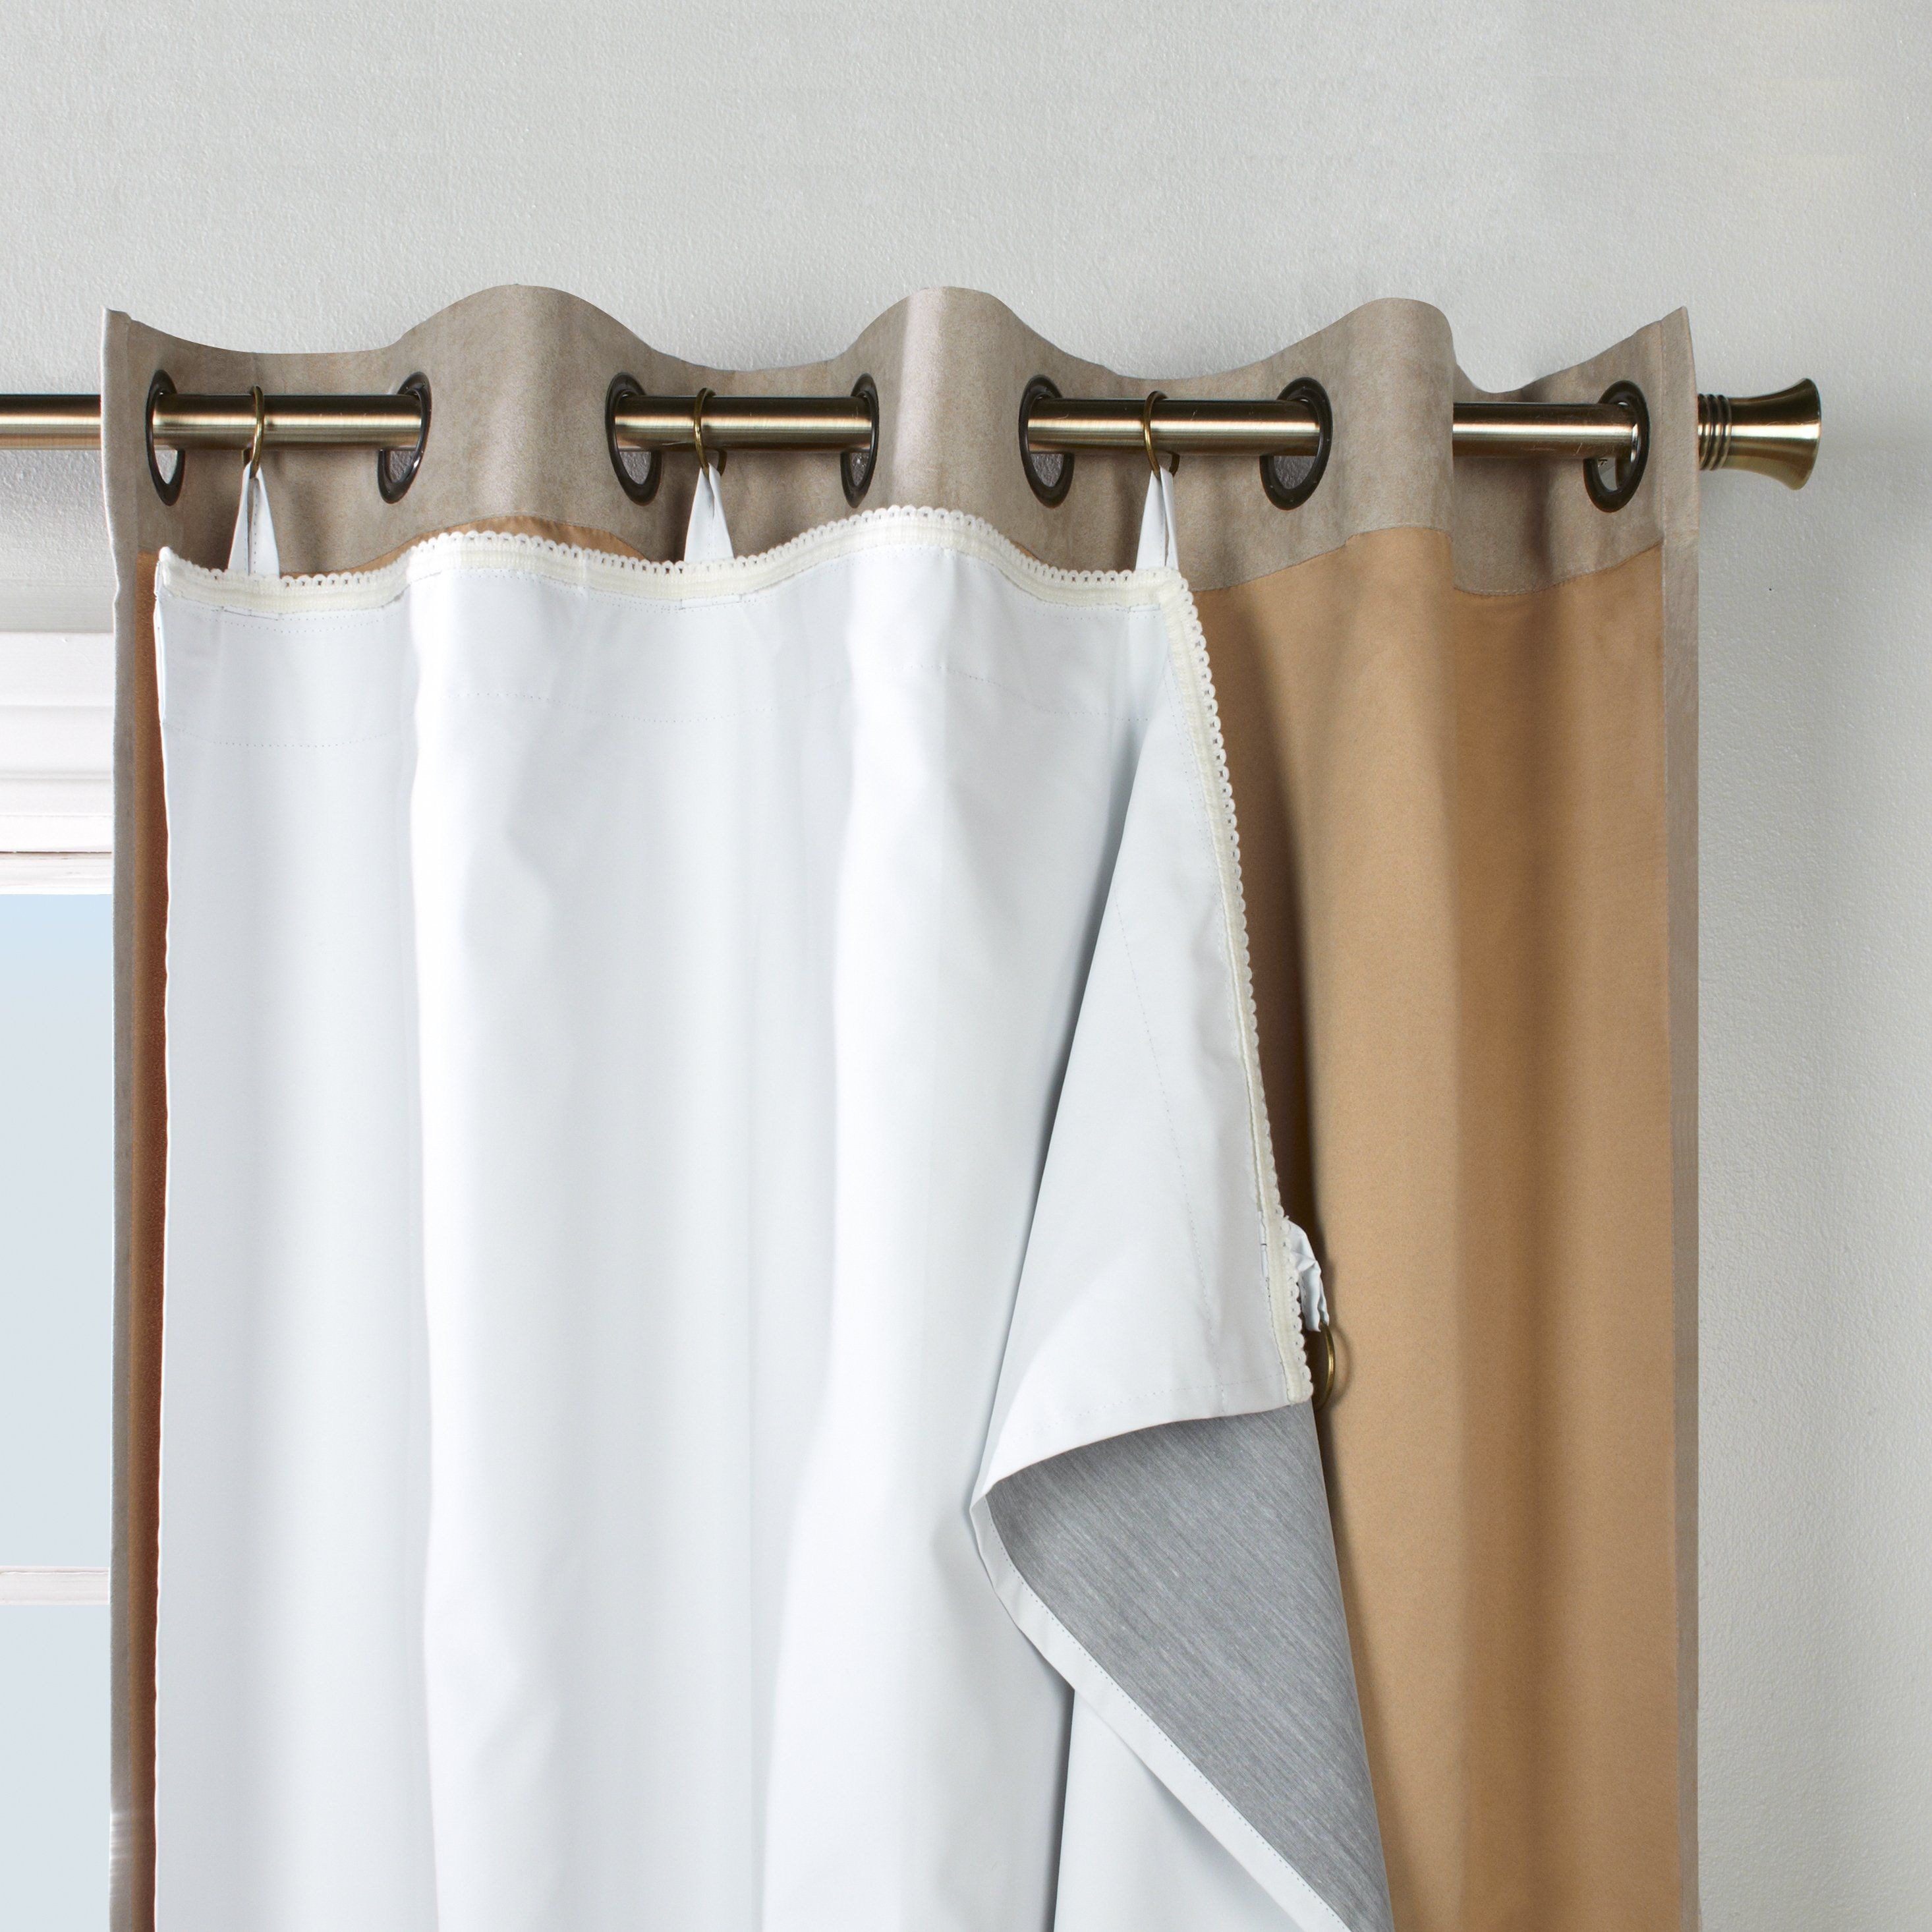 Line A Grommet Top Curtains Blackout Curtains Insulated